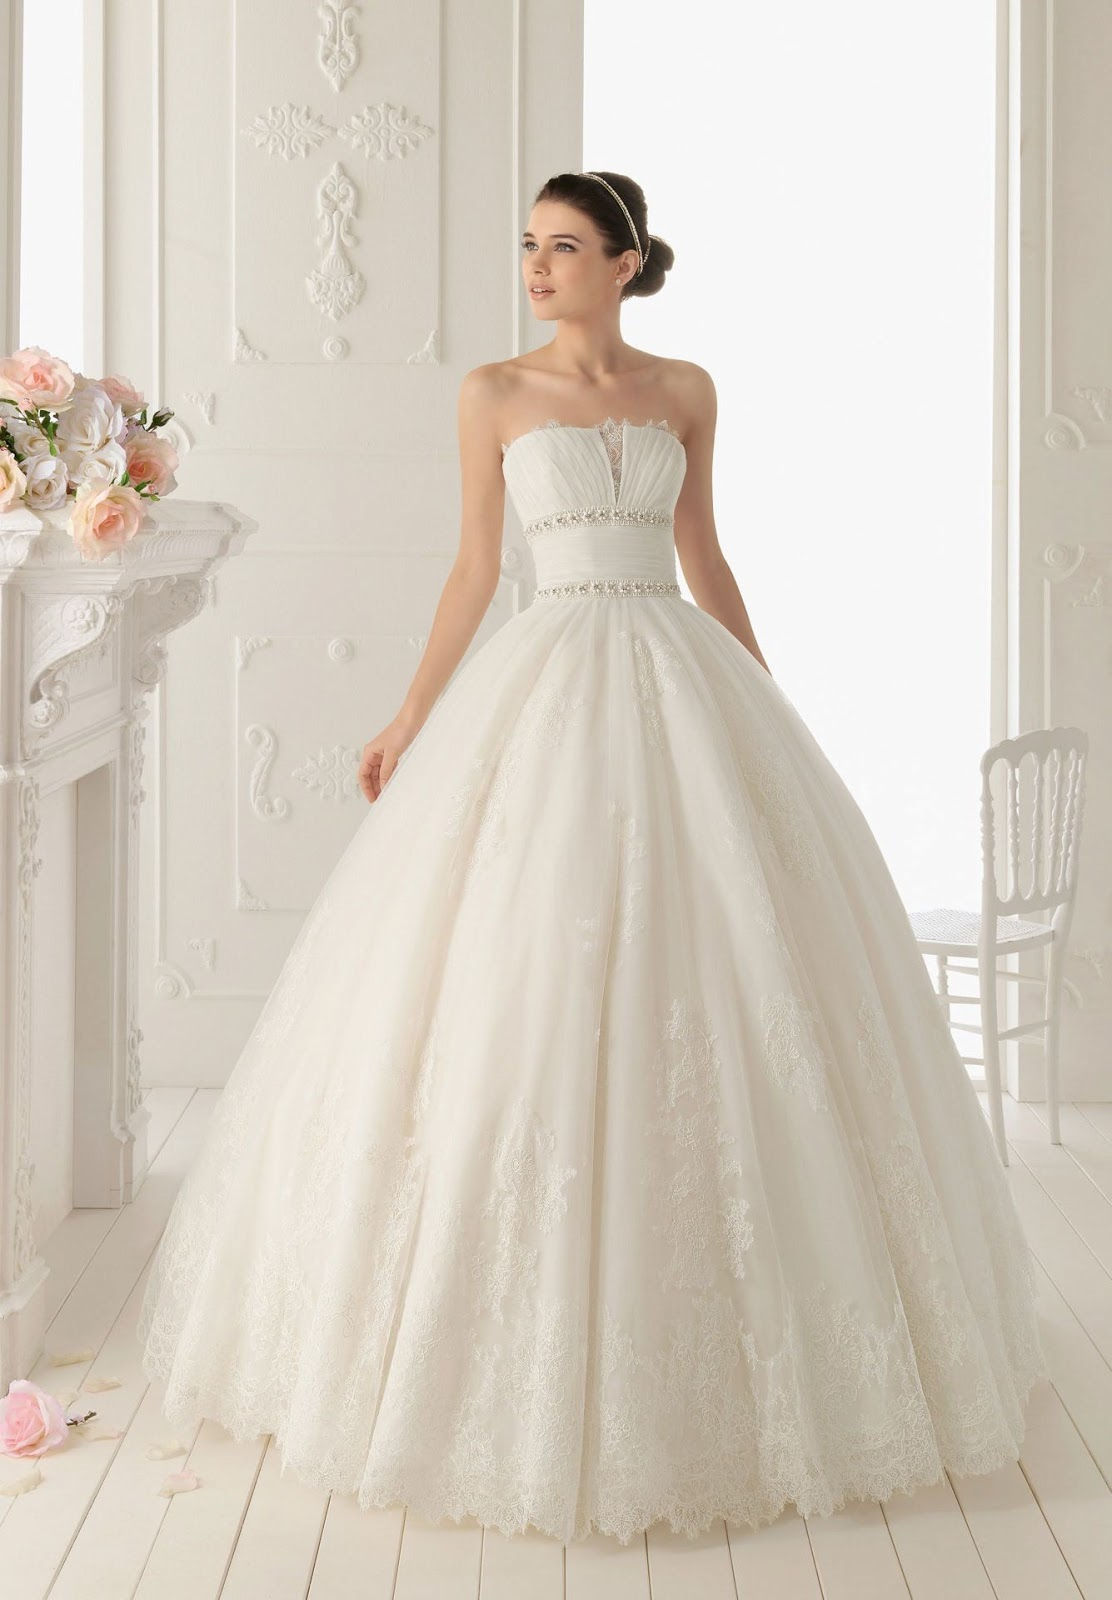 Generous Hairstyles For Ball Gown Dresses Ideas - Images for wedding ...